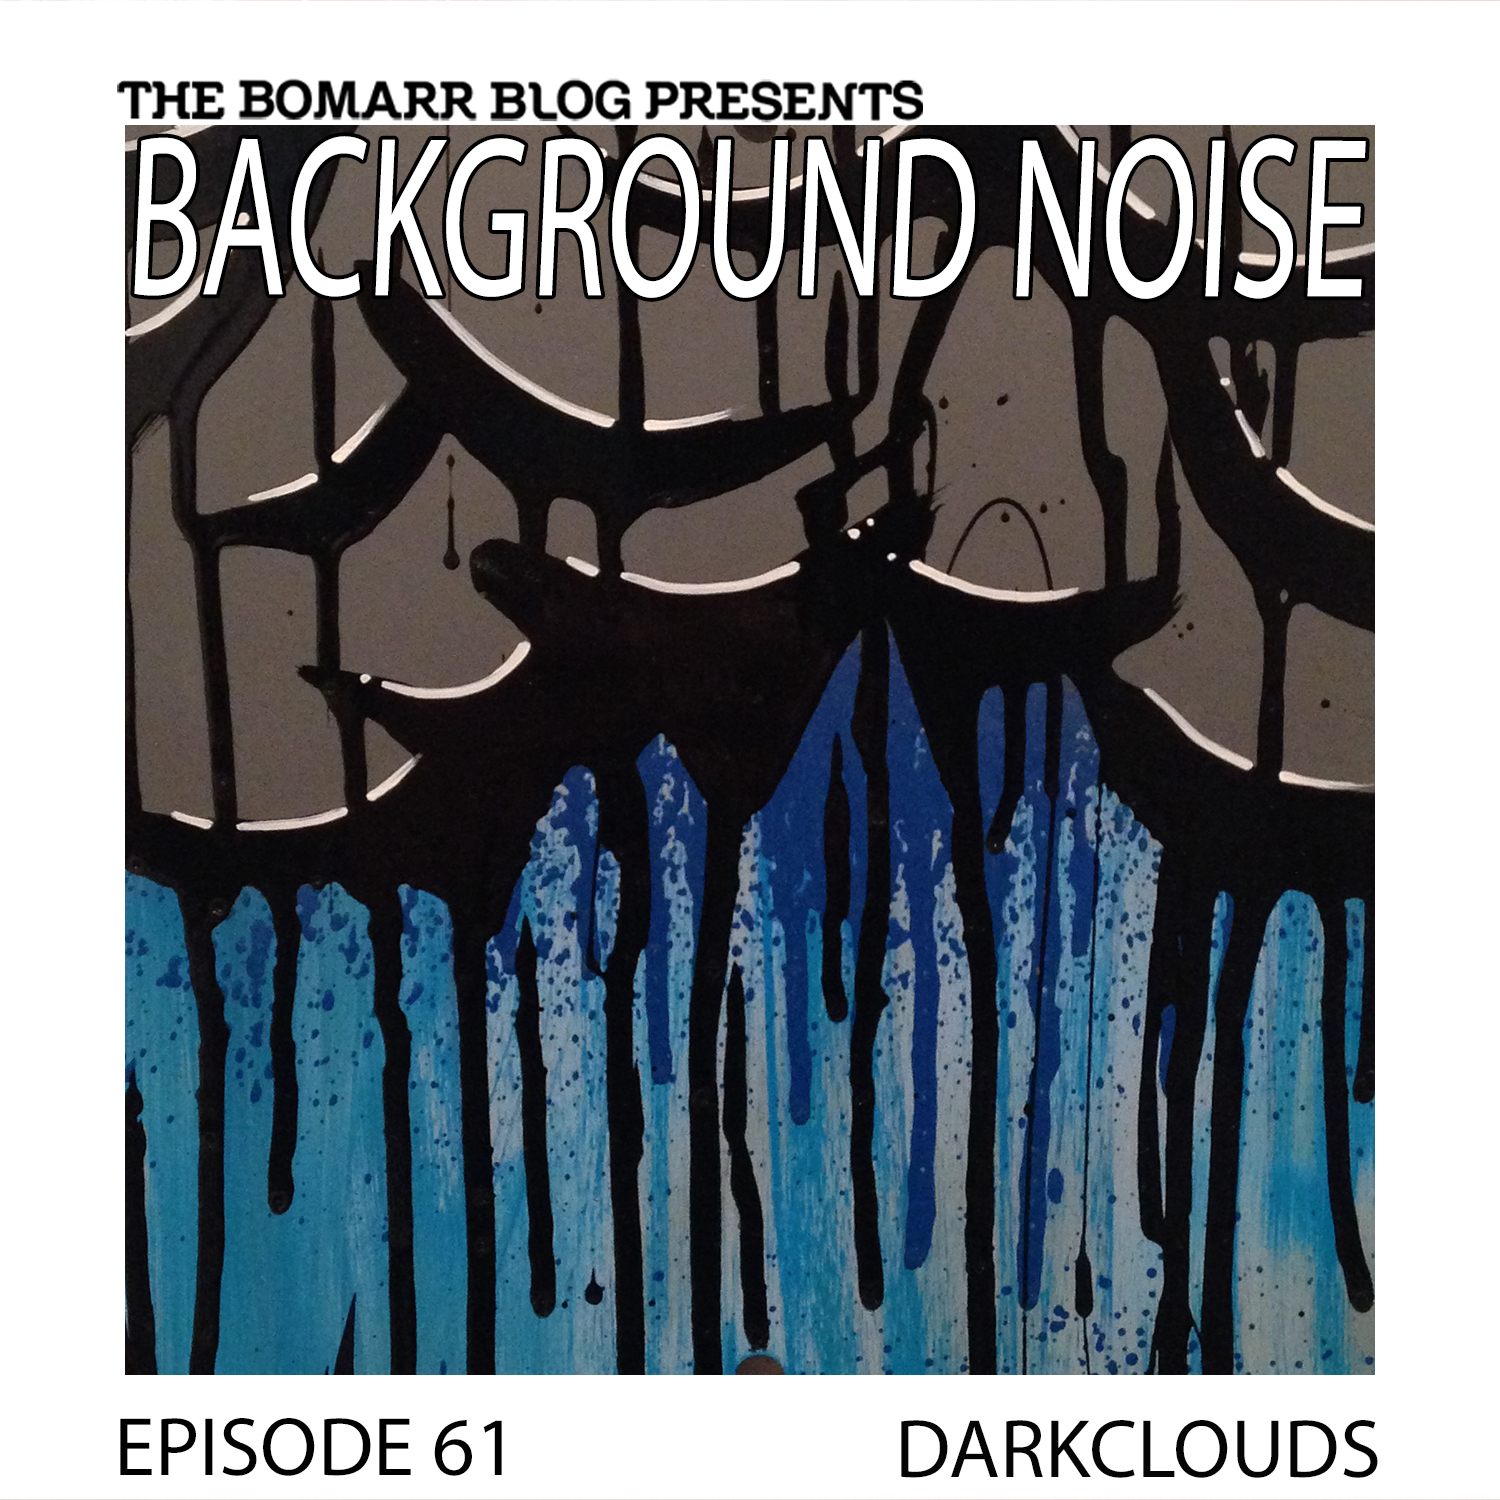 THE BACKGROUND NOISE PODCAST SERIES FOCUSES ON THE MUSIC THAT ARTISTS LISTEN TO WHEN THEY WORK, WHAT MUSIC INSPIRES THEM, OR JUST MUSIC THEY LIKE. THIS WEEK, IN EPISODE 61, THE FOCUS IS ON ARTIST DARKCLOUDS